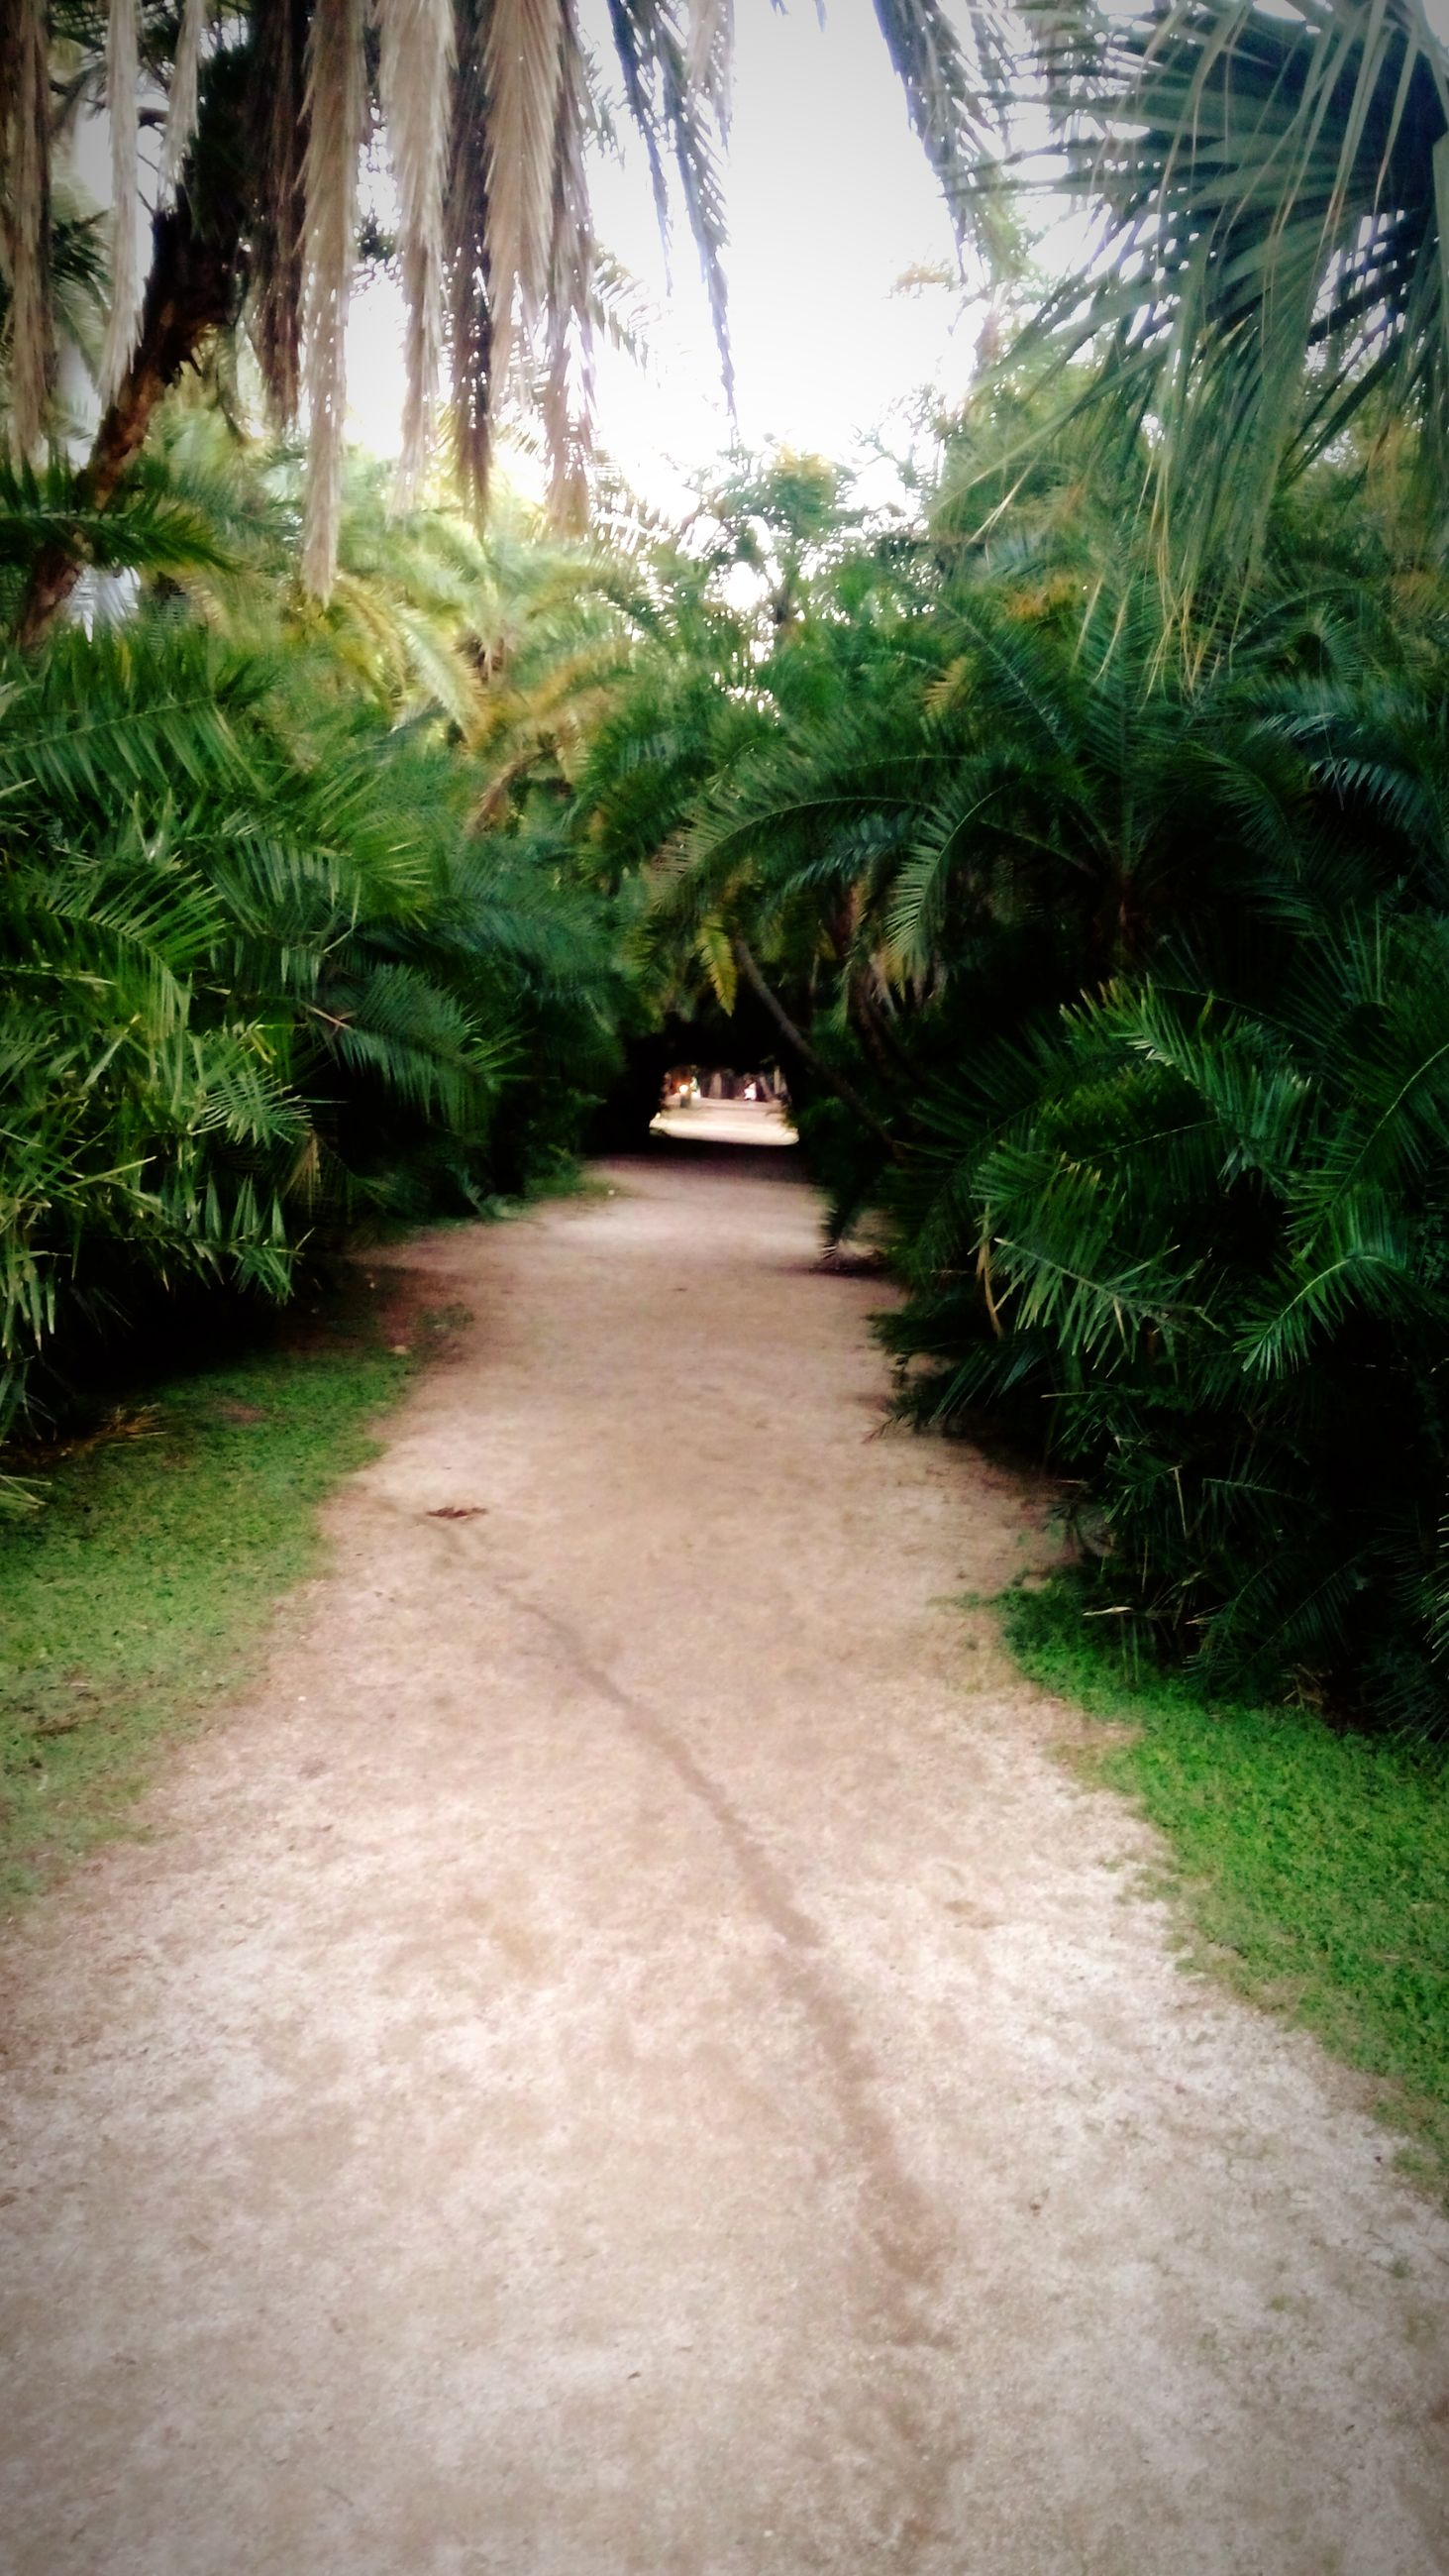 tree, the way forward, growth, green color, diminishing perspective, footpath, nature, tranquility, plant, grass, narrow, pathway, tranquil scene, vanishing point, walkway, beauty in nature, sunlight, green, palm tree, shadow